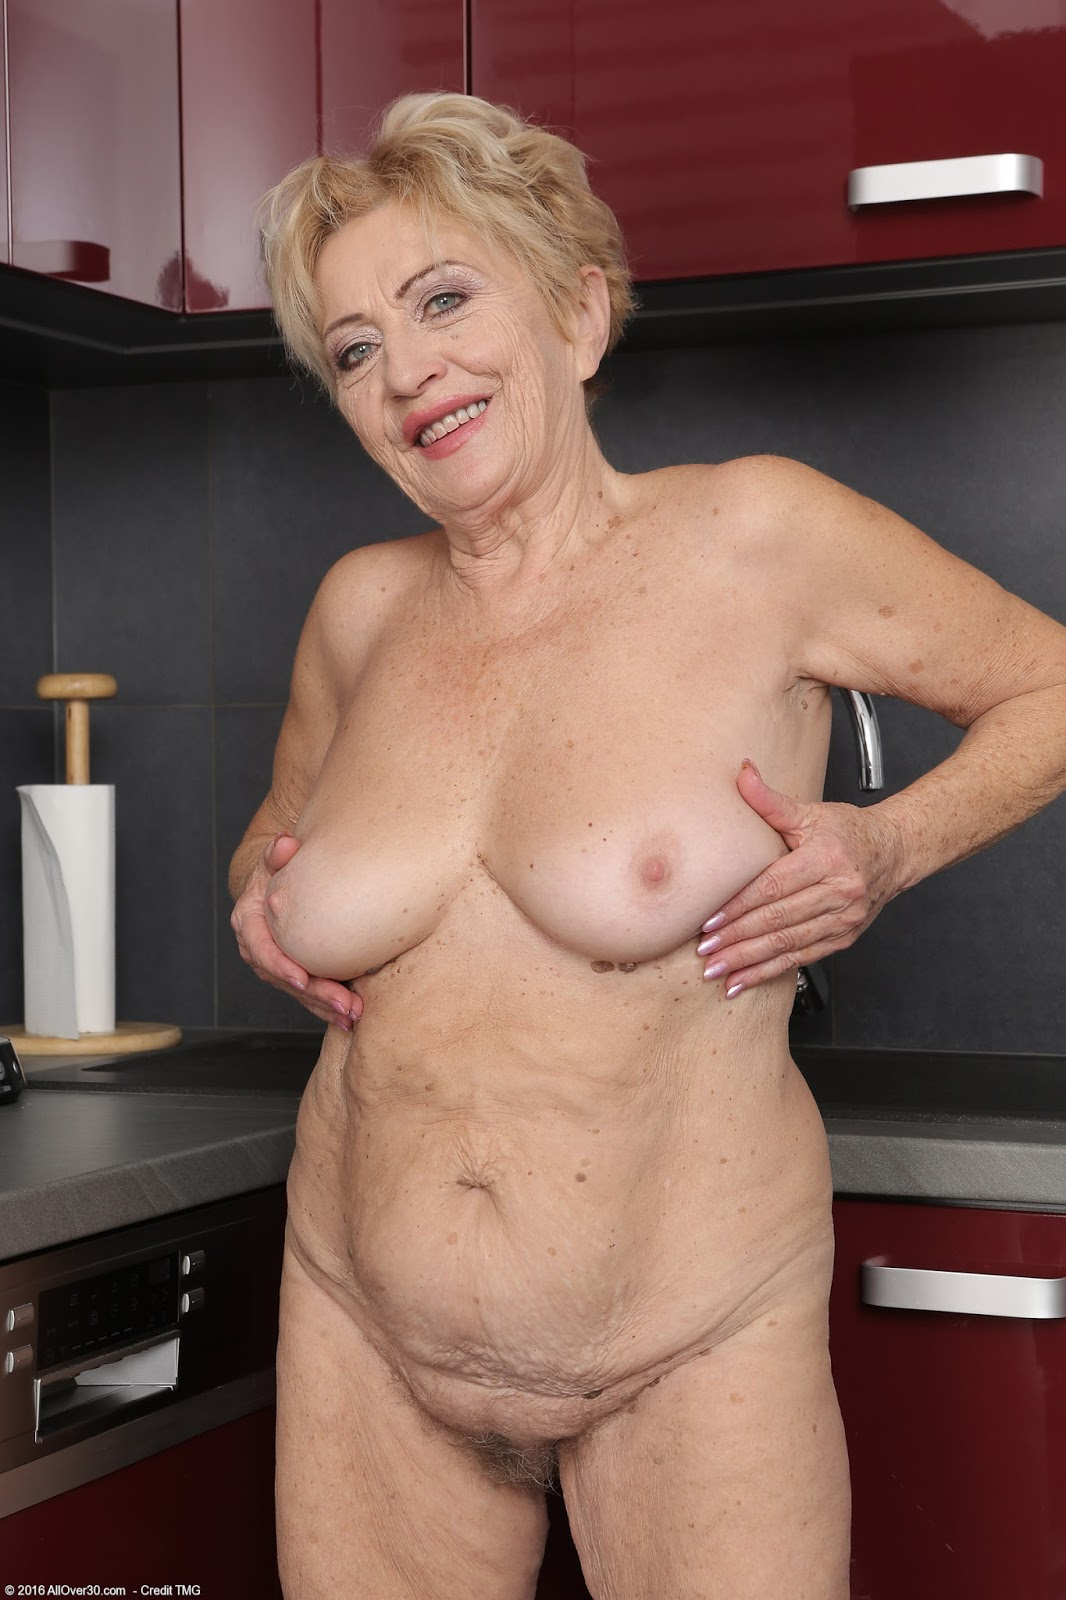 82 year old grandma libby takes young black cock 10